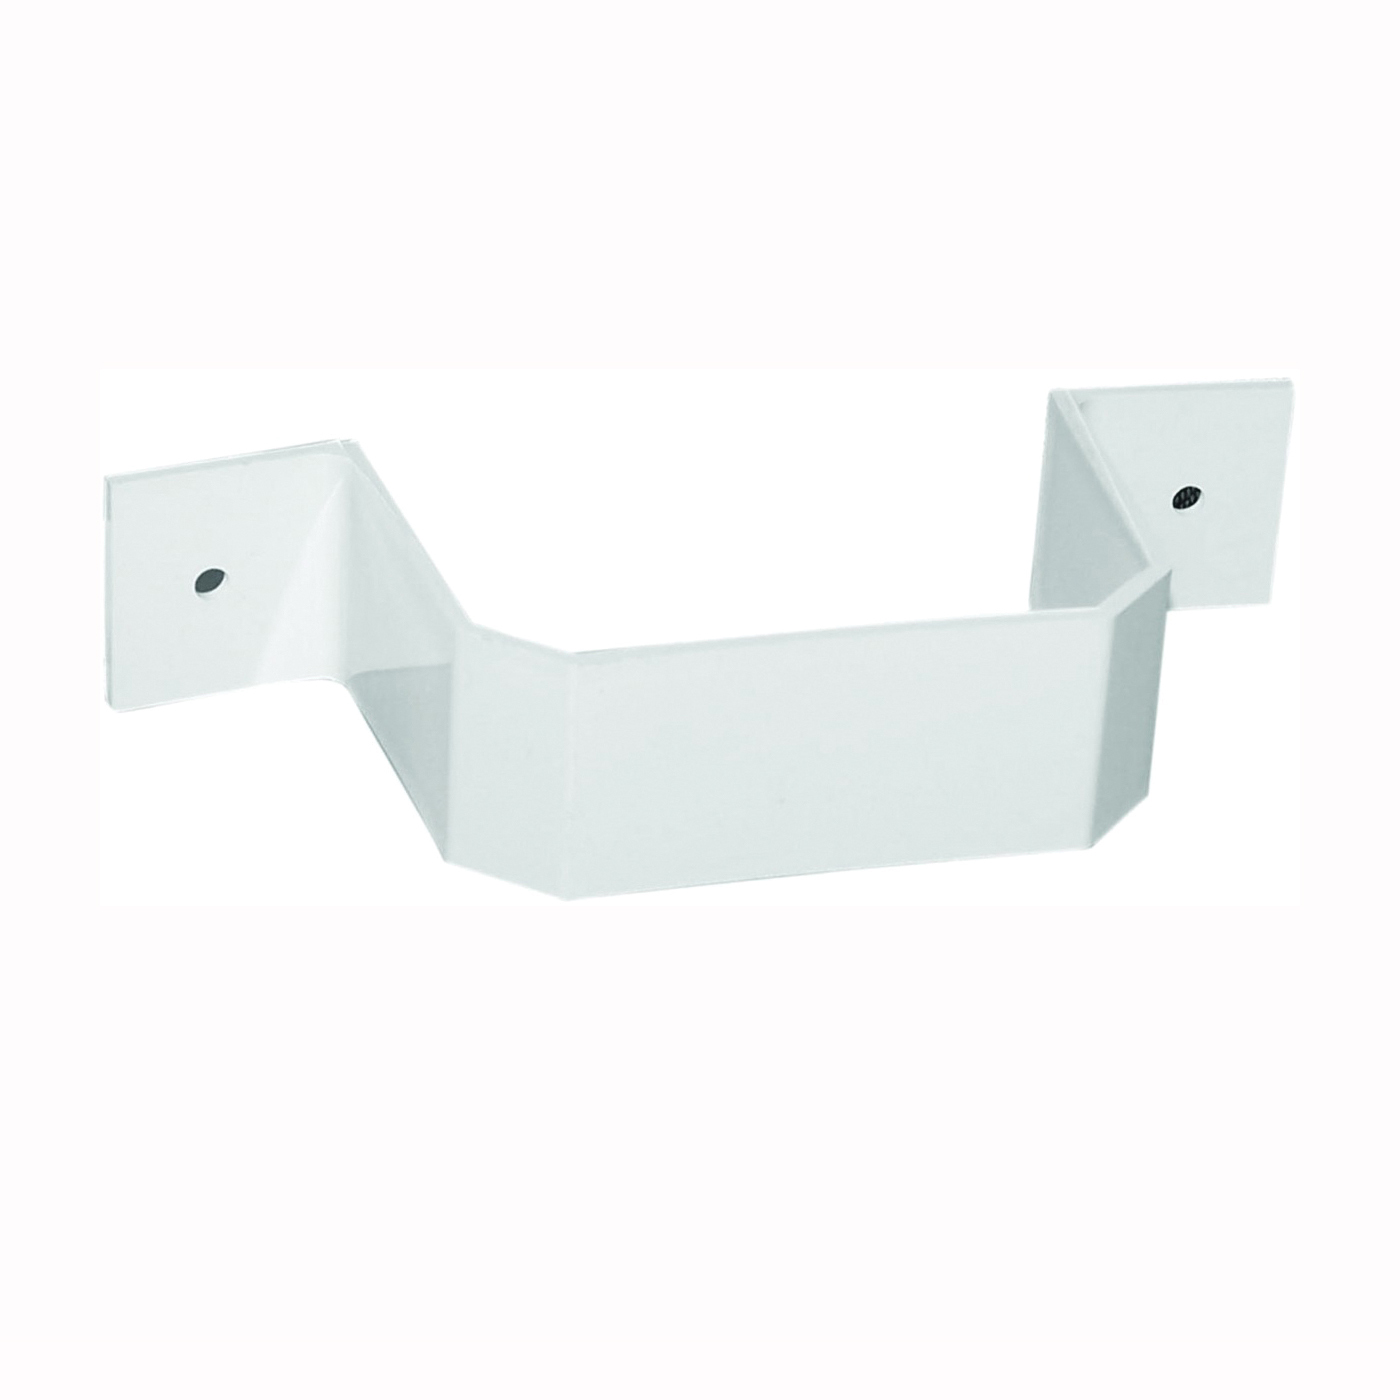 Picture of GENOVA AW202 Downspout Bracket, Vinyl, White